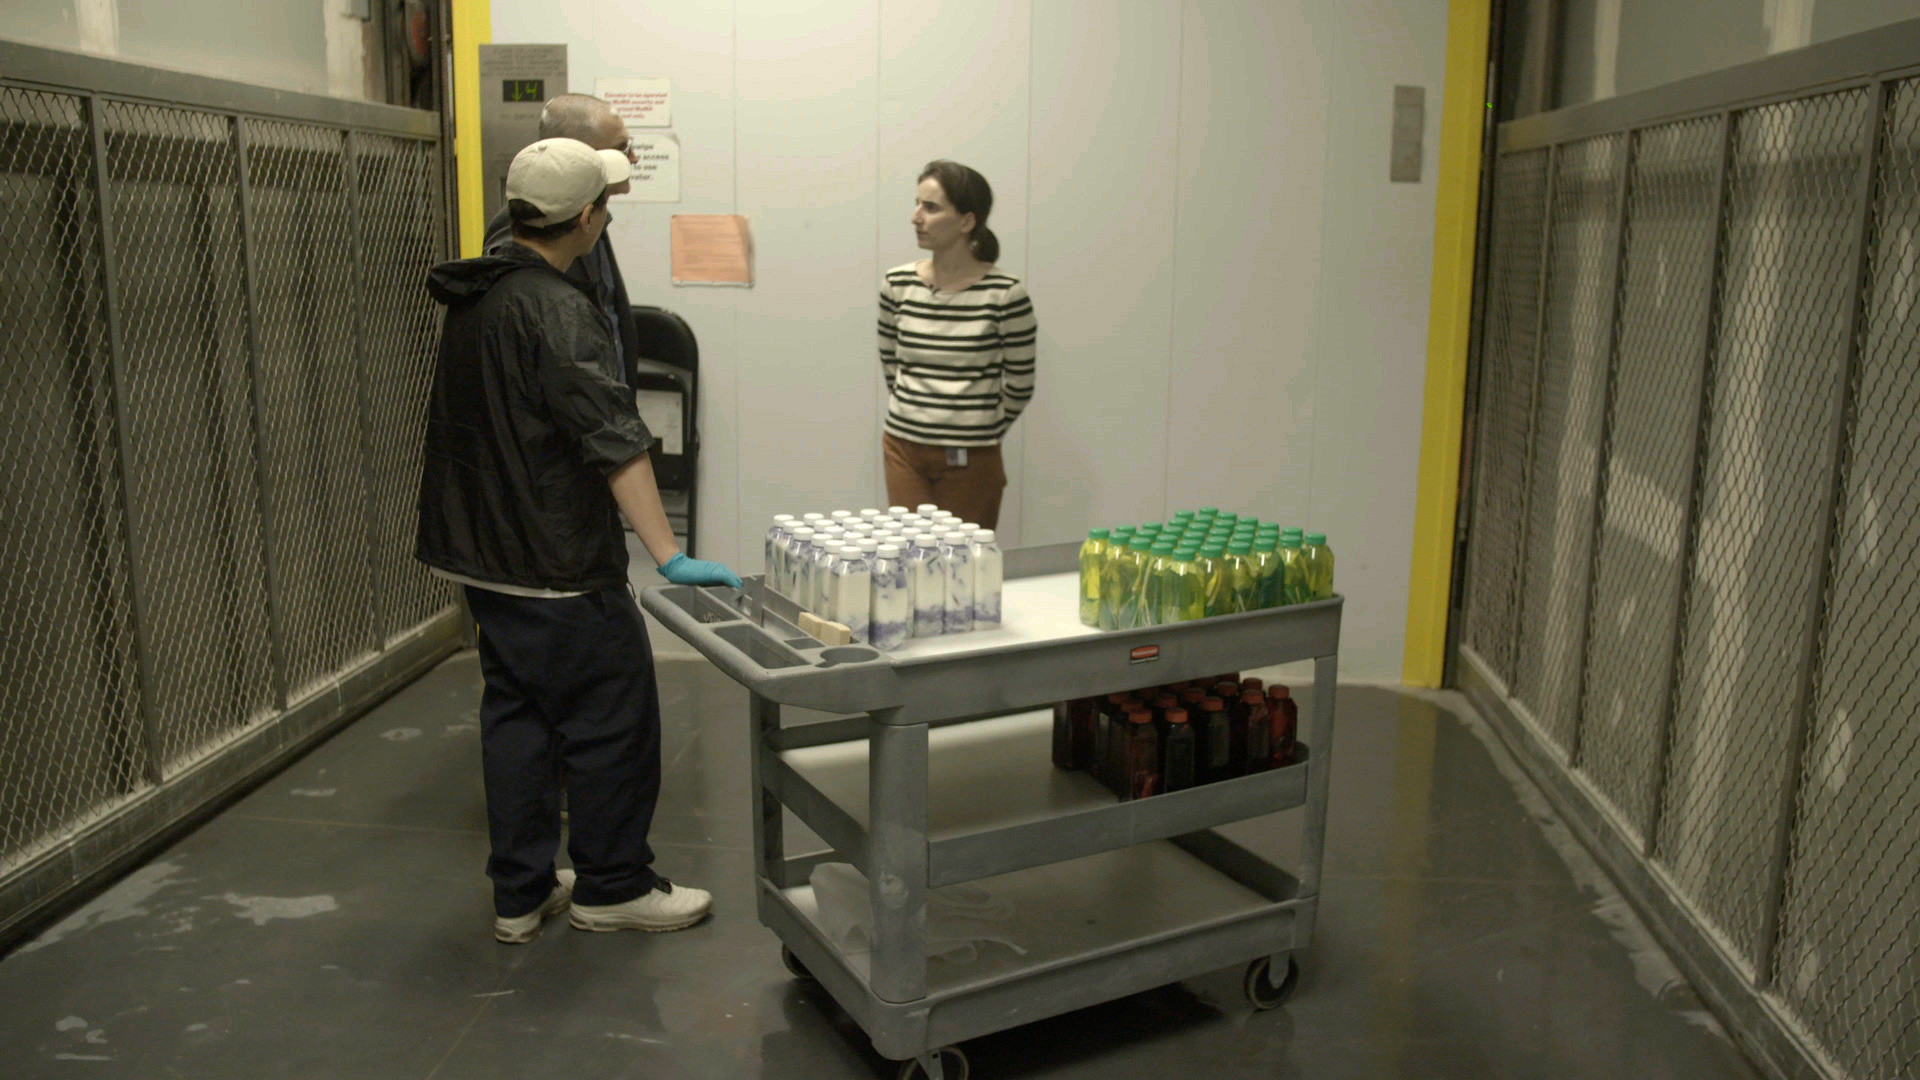 Because proper ventilation and documentation equipment were needed, the drinks were made in the Museum's conservation lab, then shuttled to the gallery in the freight elevator.